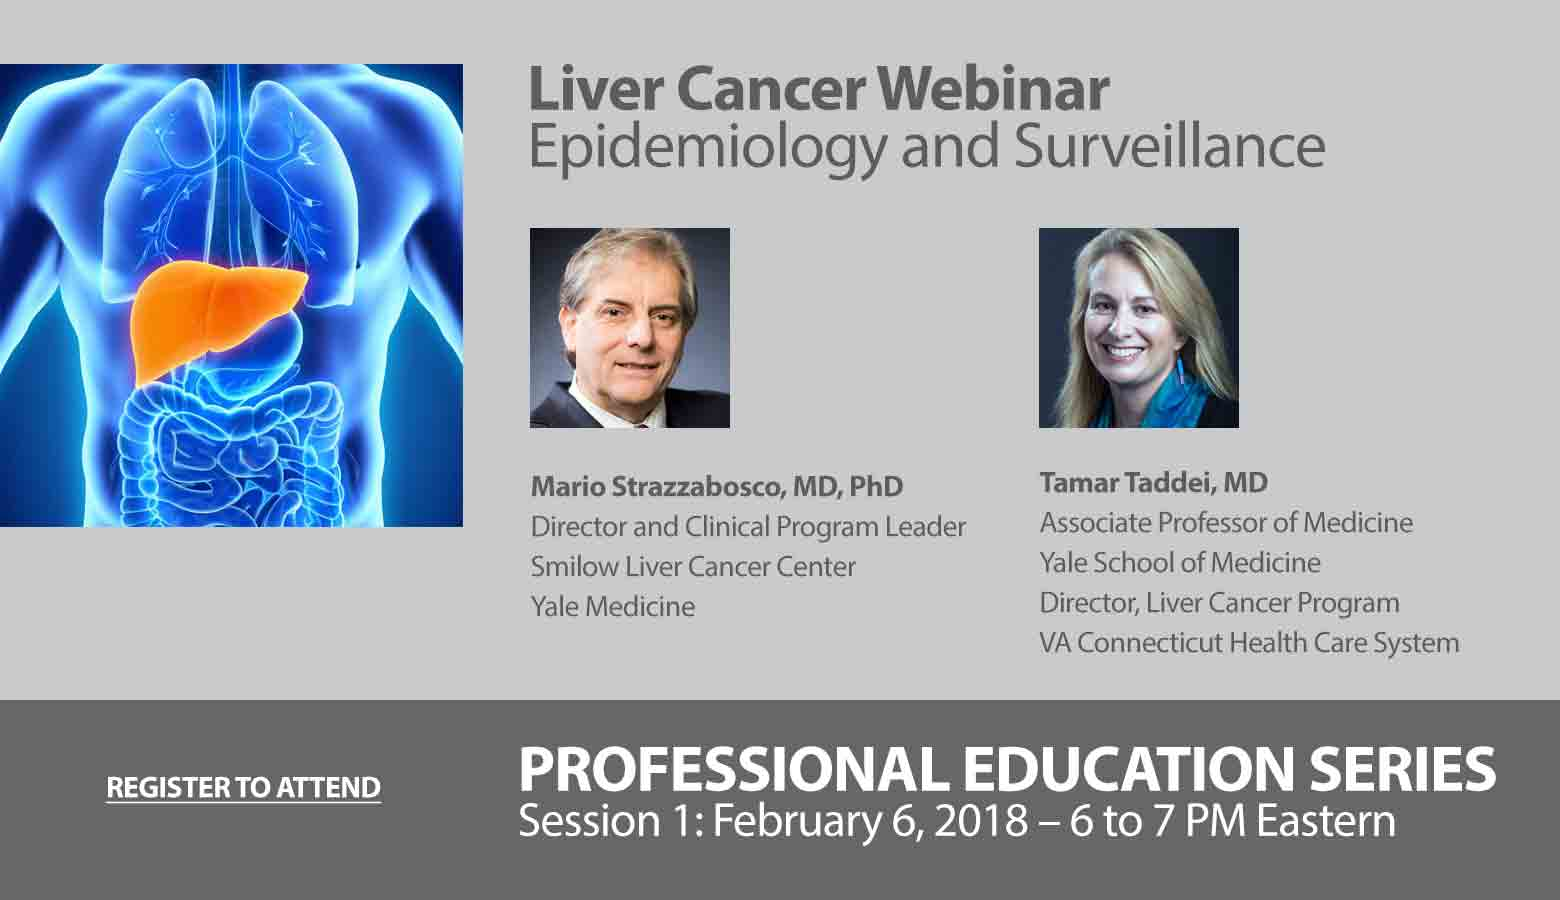 Liver Cancer Webinar – Epidemiology and Surveillance